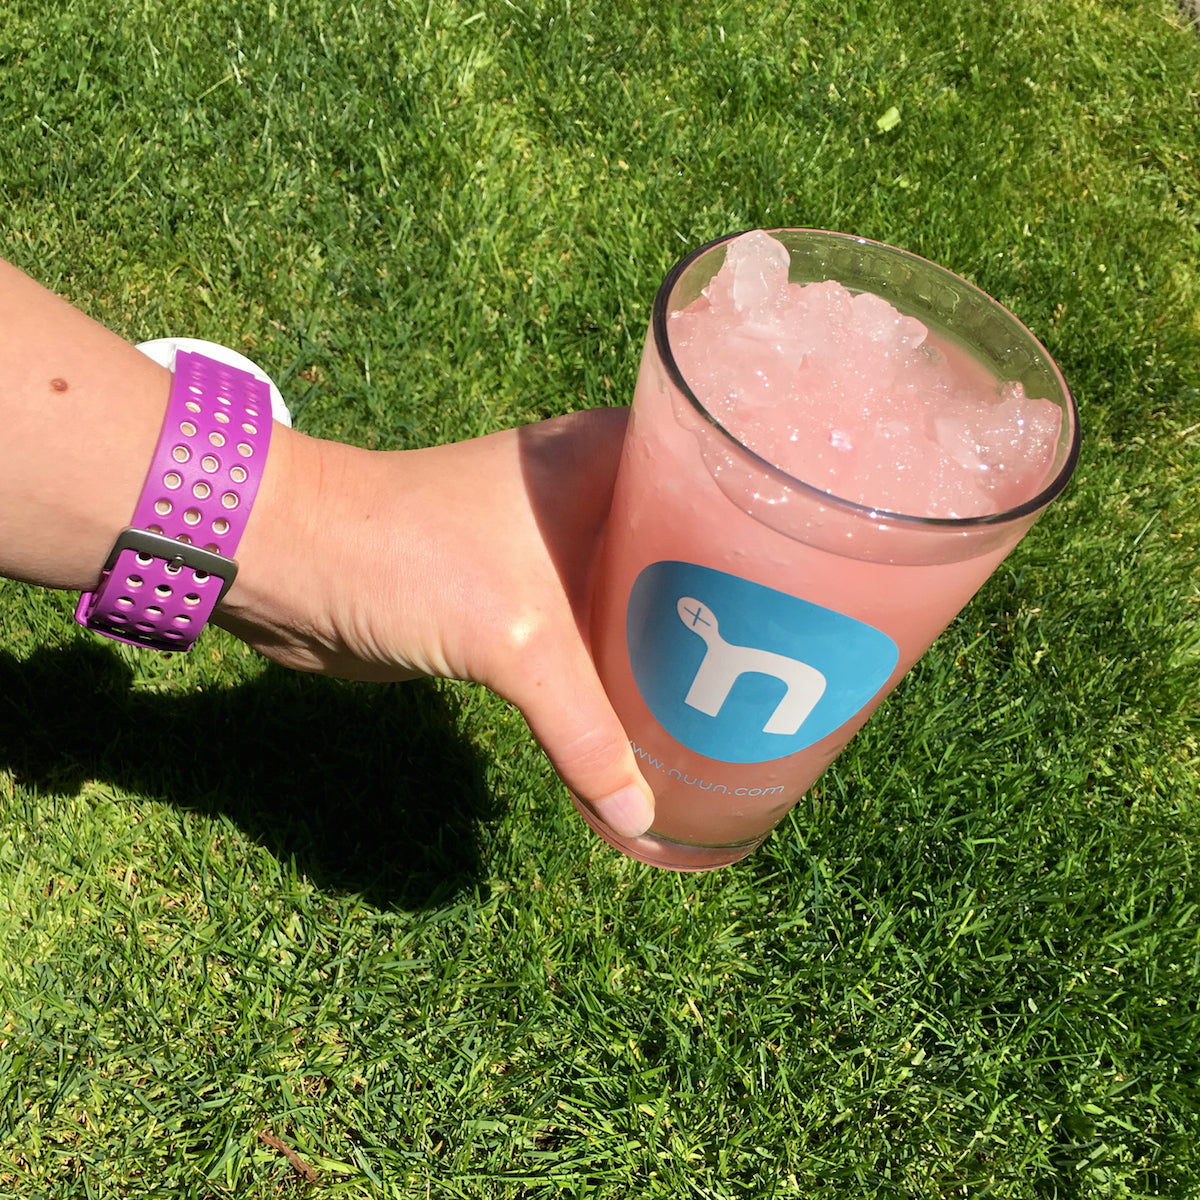 person holding a nuun pint glass with a nuun slushie